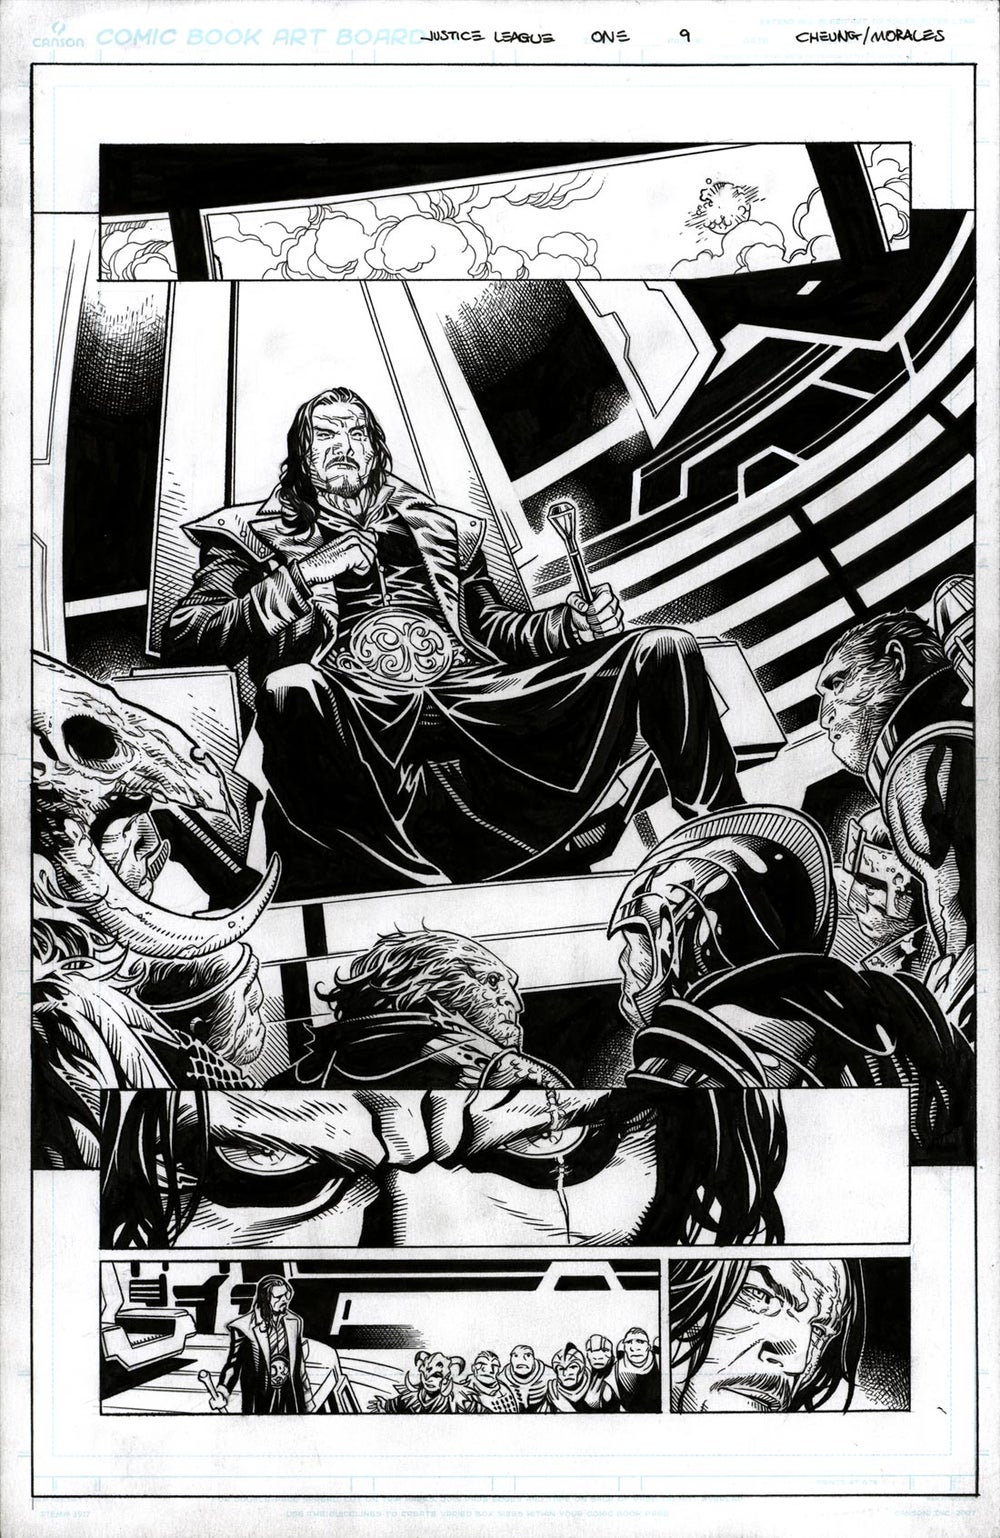 Image of JUSTICE LEAGUE #1 Page 09